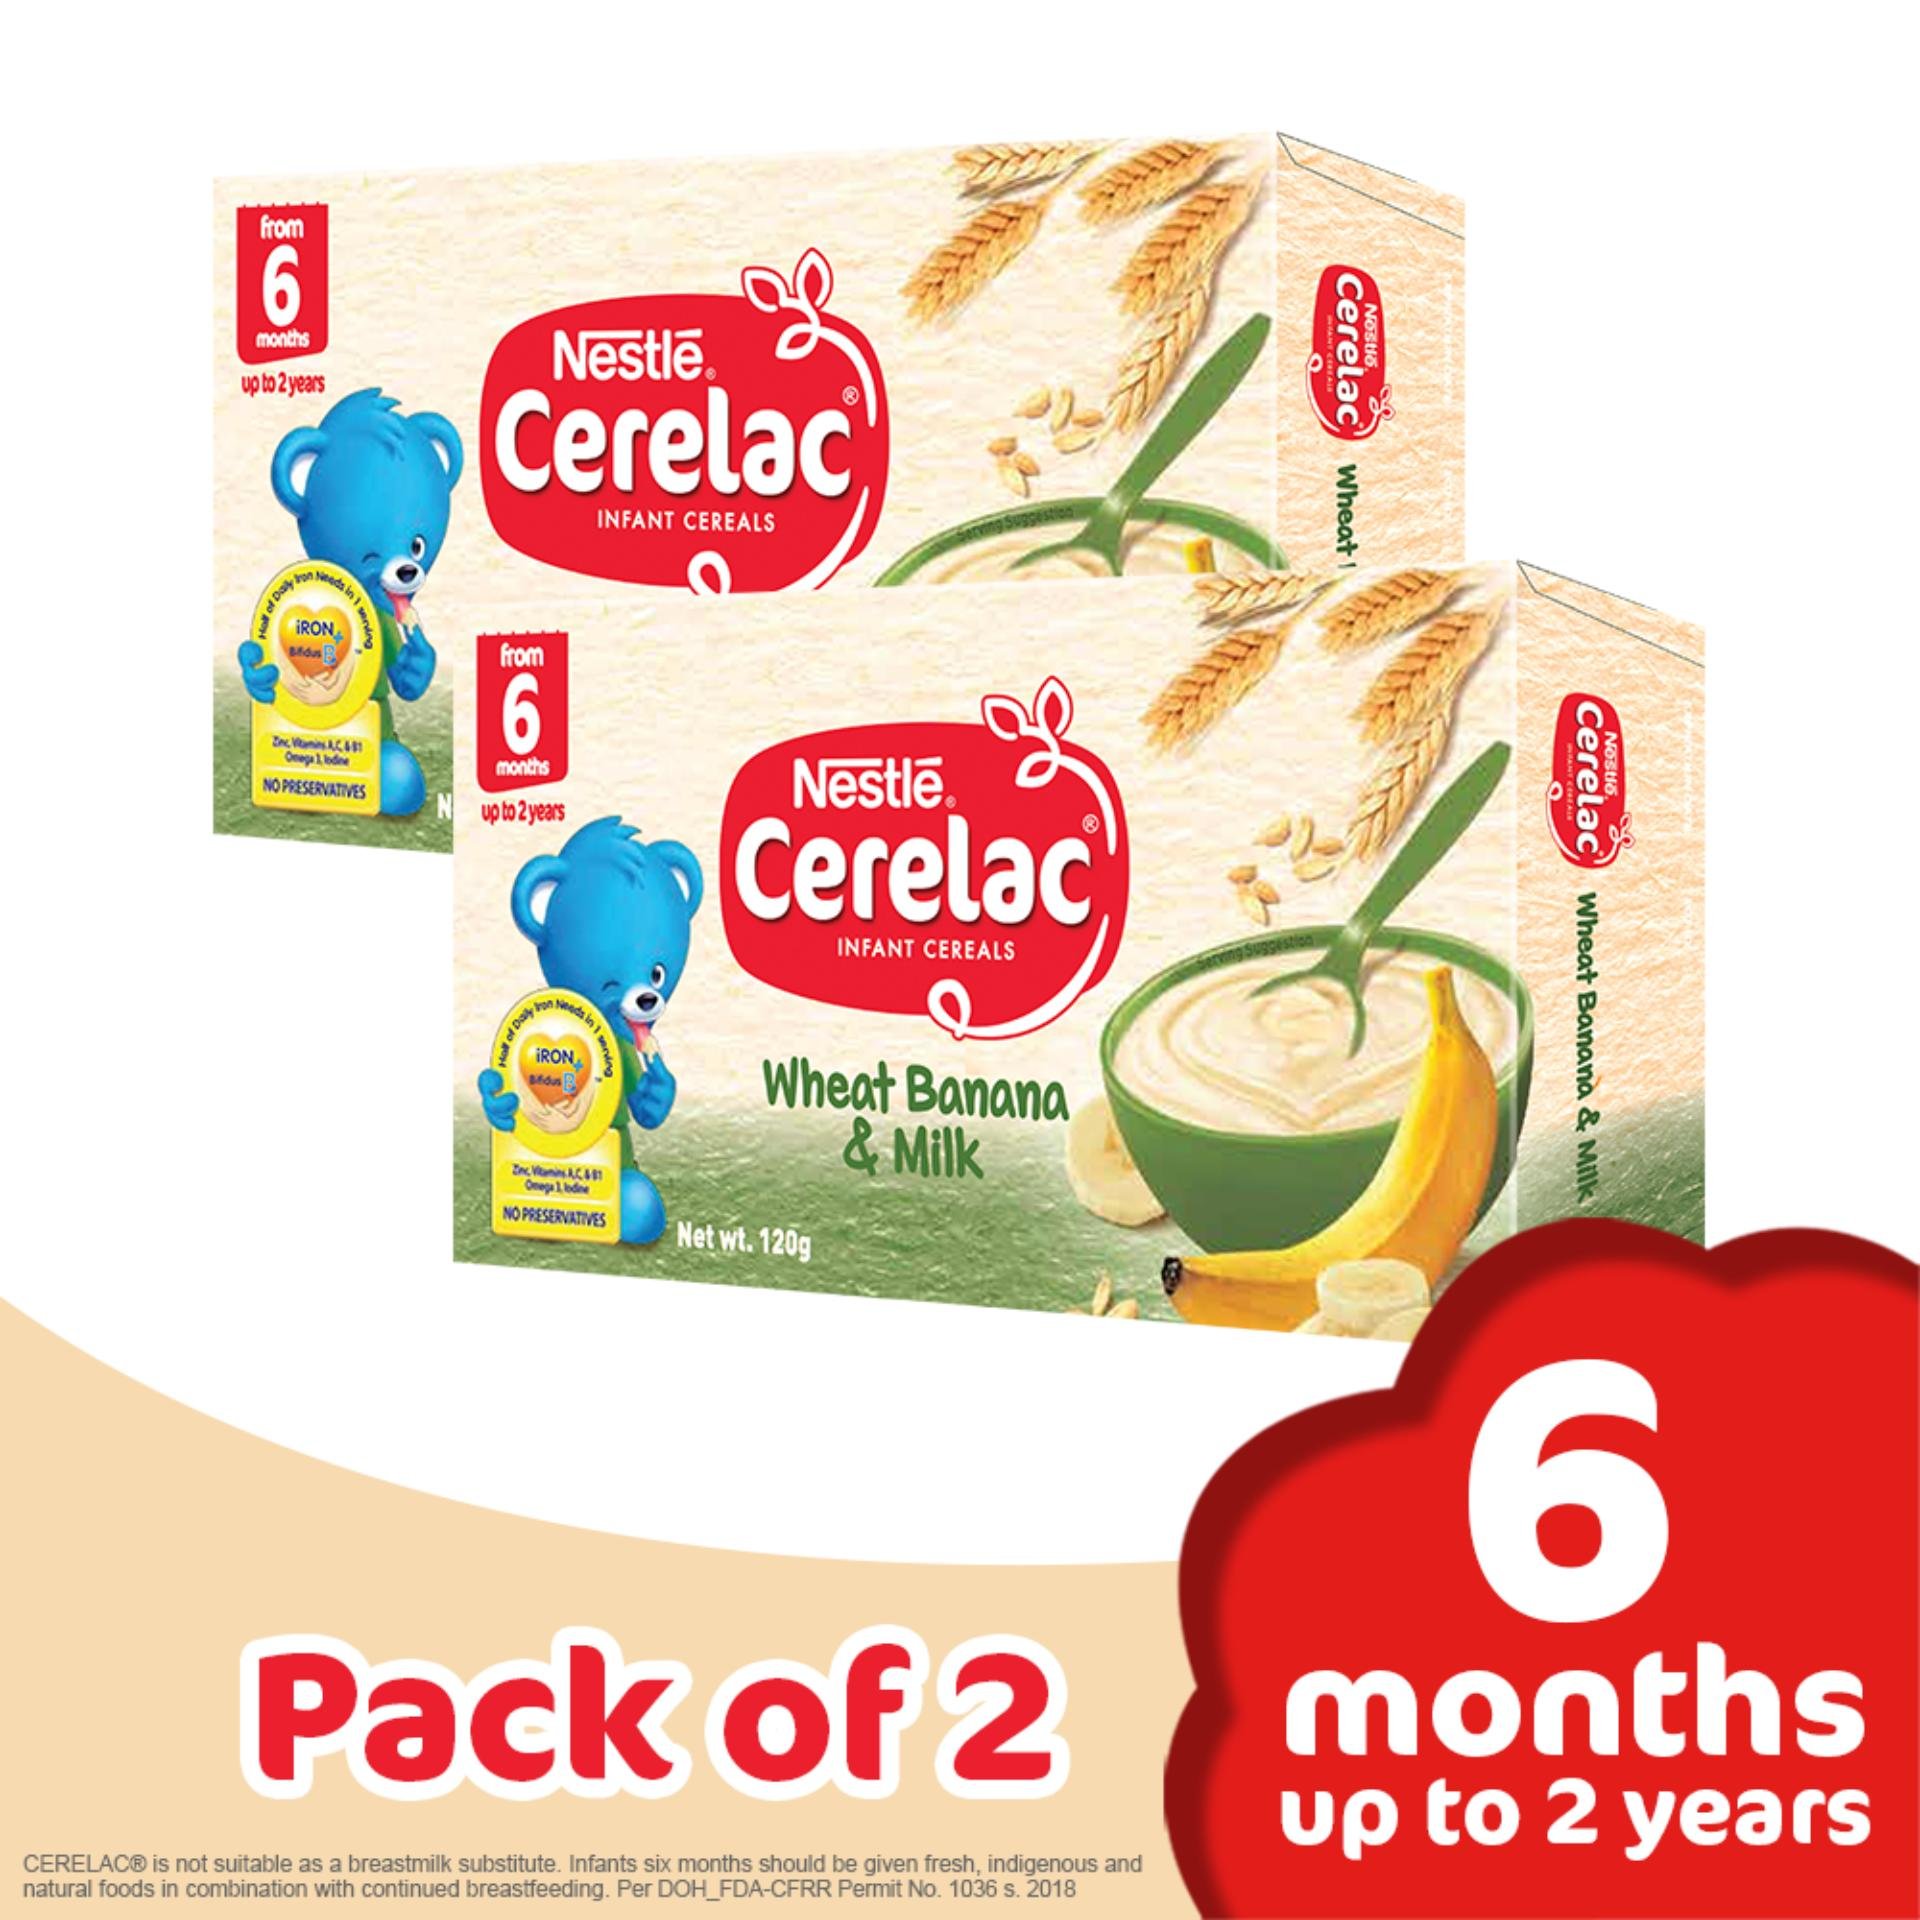 Baby Food For Sale Organic Online Brands Prices Gerber Graduates Puff Strawberry Apple 42 Gram Nestle Cerelac Bl Wheat Banana Milk 120g Pack Of